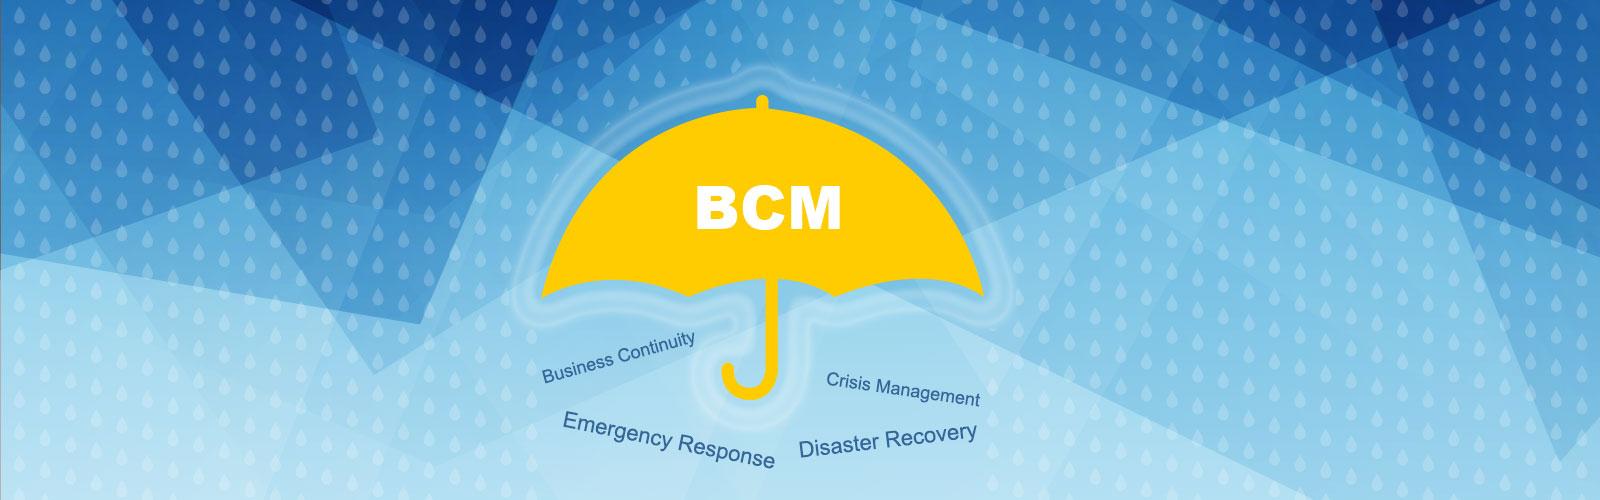 Il Business Continuity Management come professione